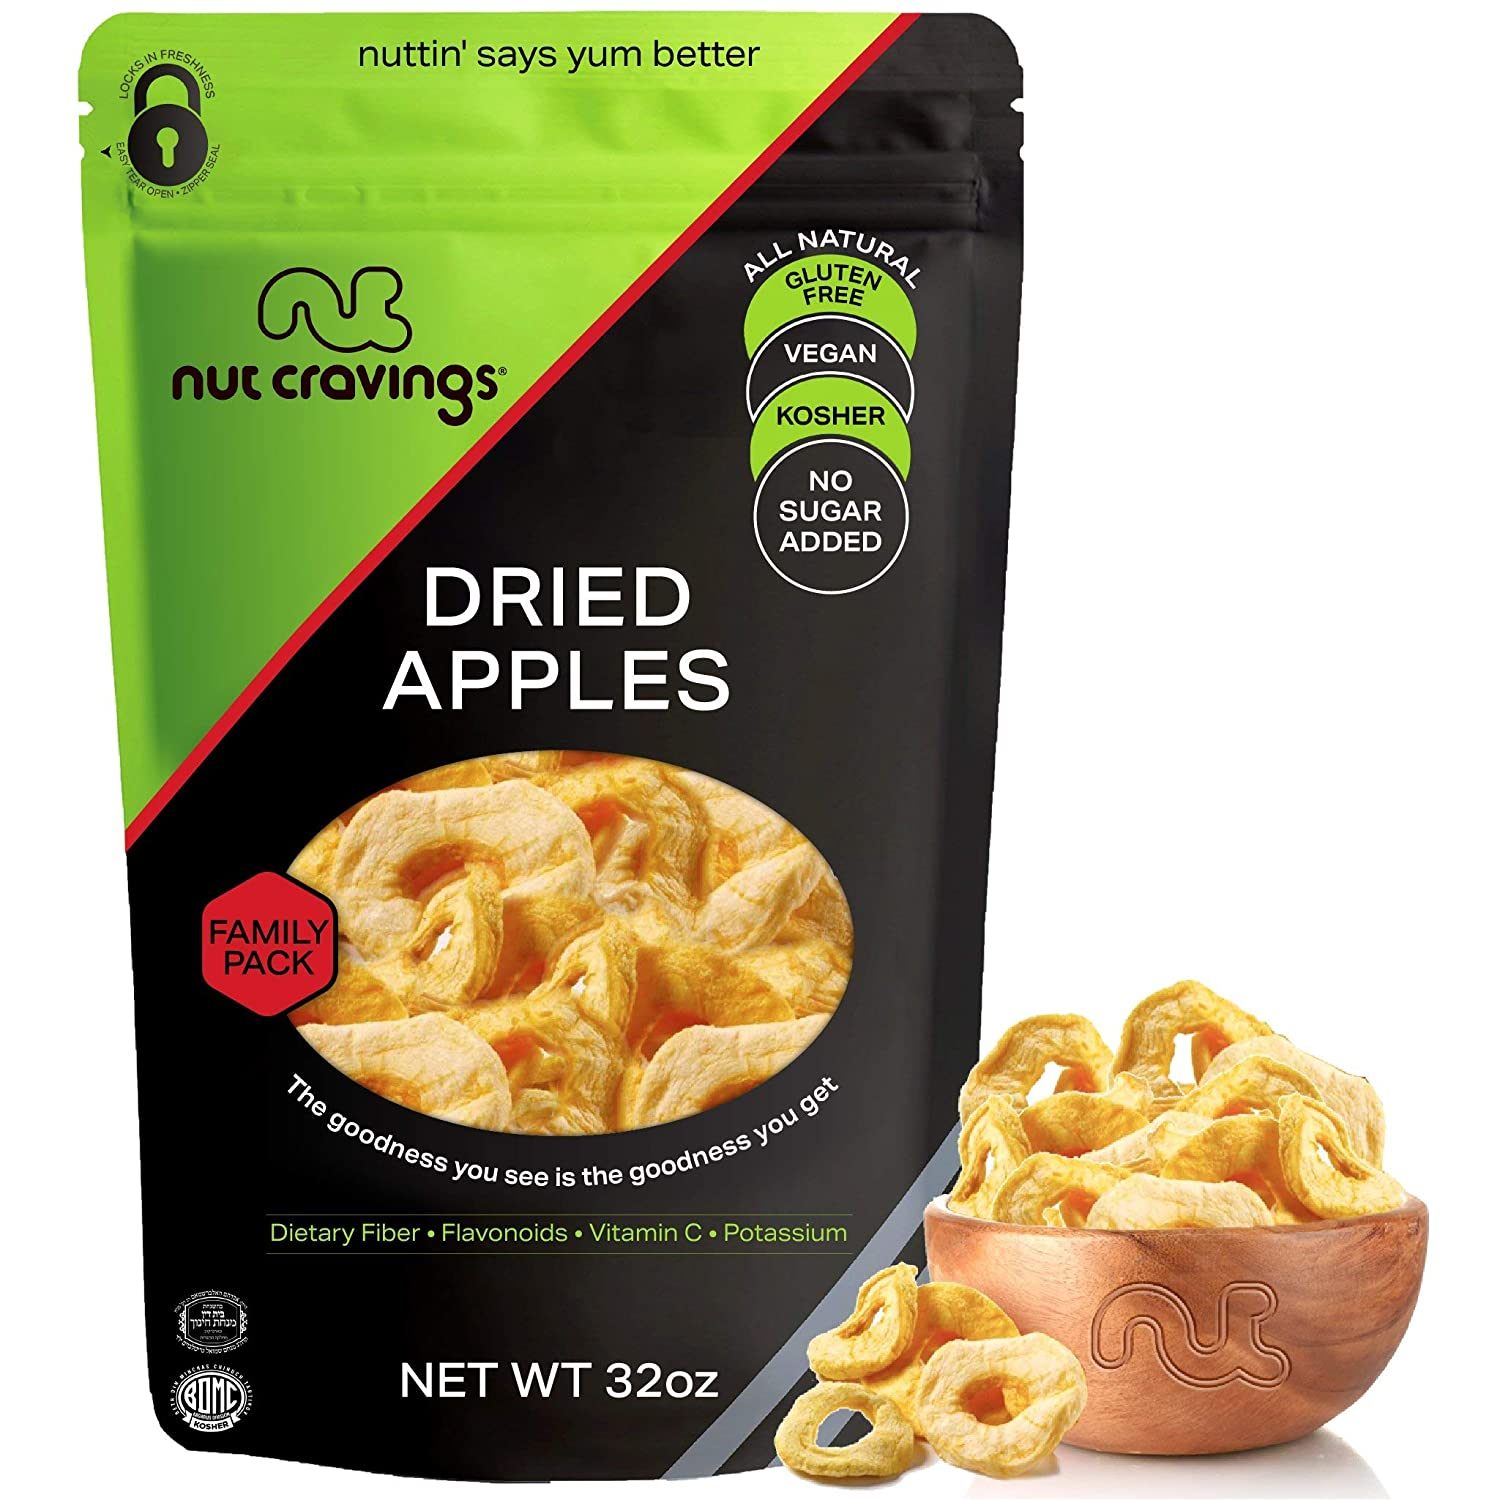 Sun Dried Apple Rings Slices, No Sugar Added (32oz - 2 Pound) Packed Fresh in Resealable Bag - Sweet Dehydrated Fruit Treat, Trail Mix Snack - Healthy Food, All Natural, Vegan, Kosher Certified